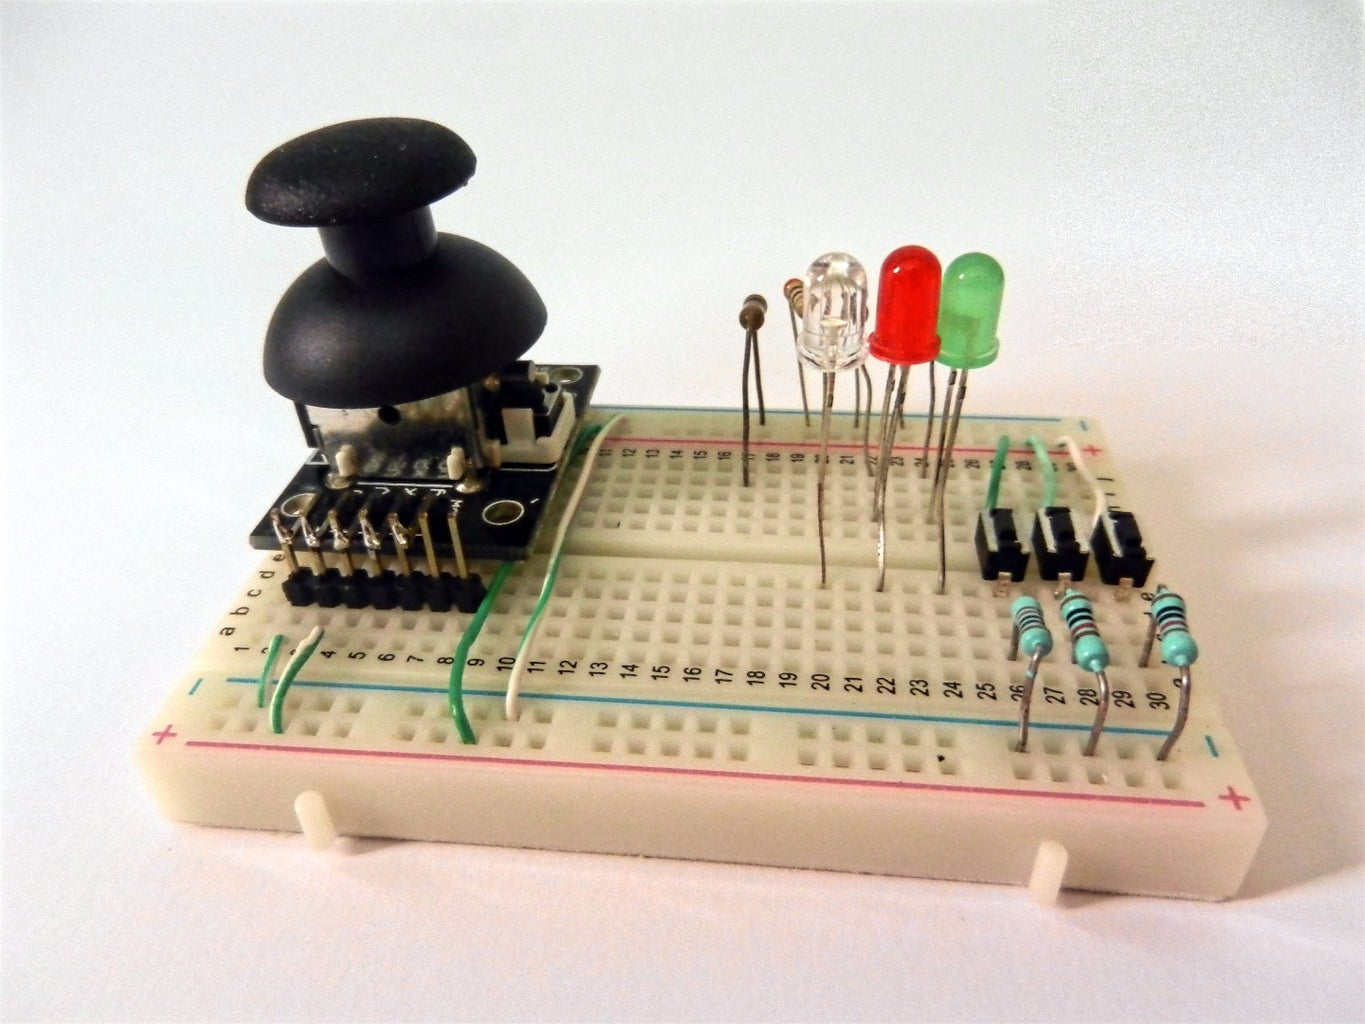 Use a Potentiometer and Buttons Instead of Sensors